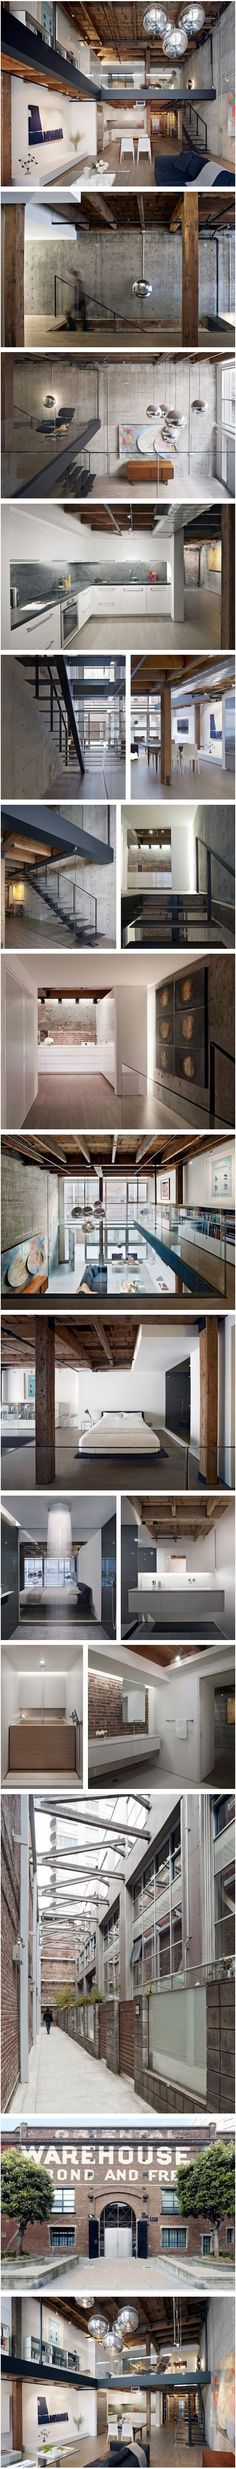 Renovated-Oriental-Warehouse-by-Edmonds-Lee-Architects Great mix of precast concrete and timber